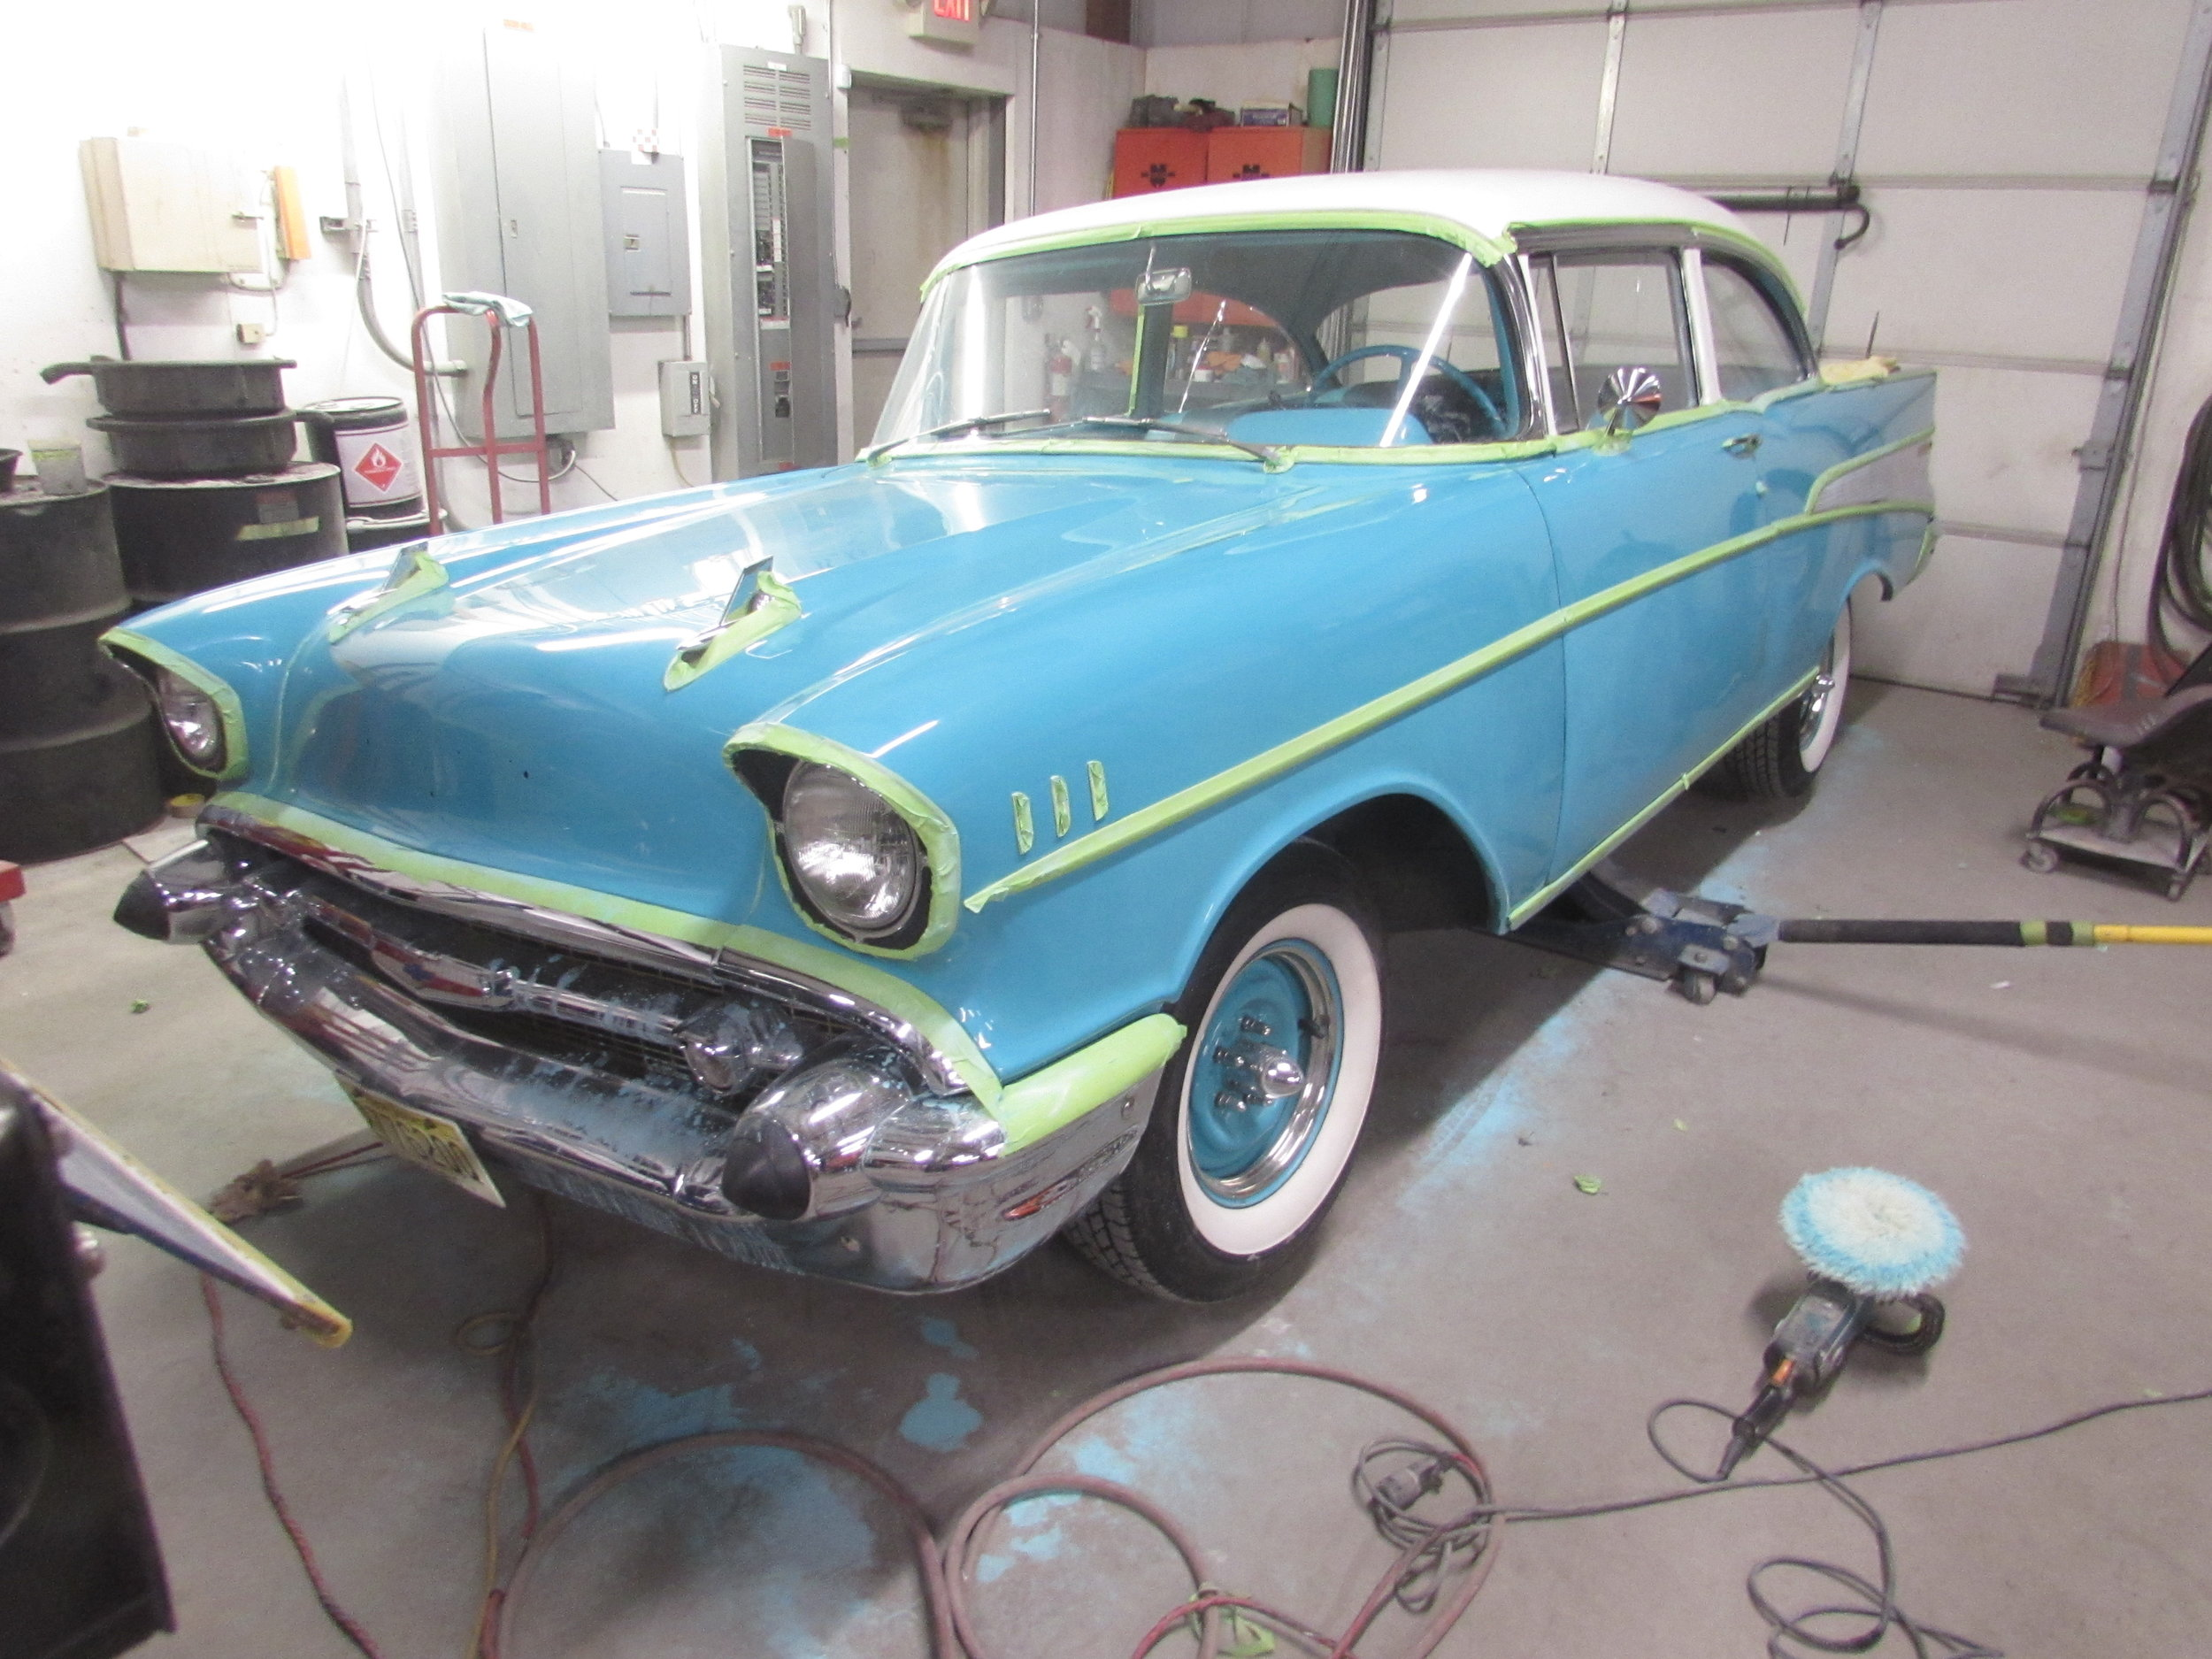 1957 Chevy Bel-Air -- Paint Preservation (Wet sanding, buffing, and polishing)